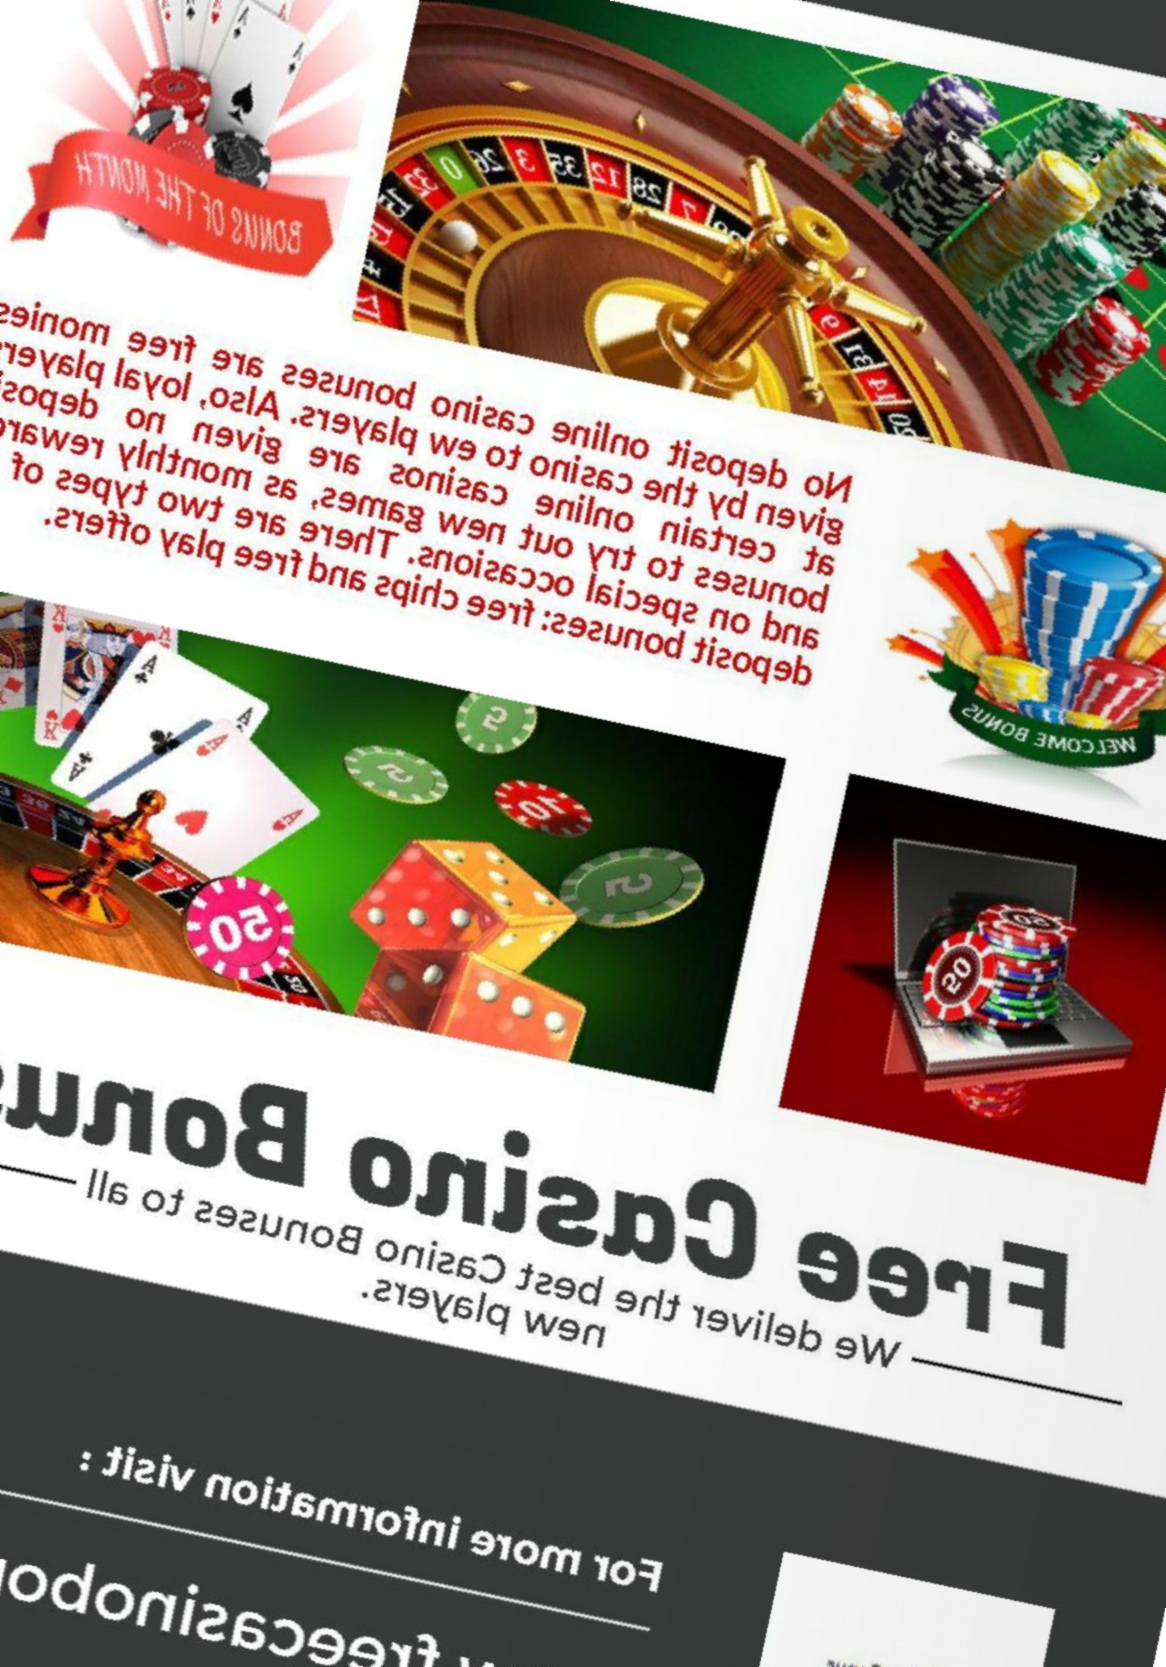 Best Casino Deposit Bonus